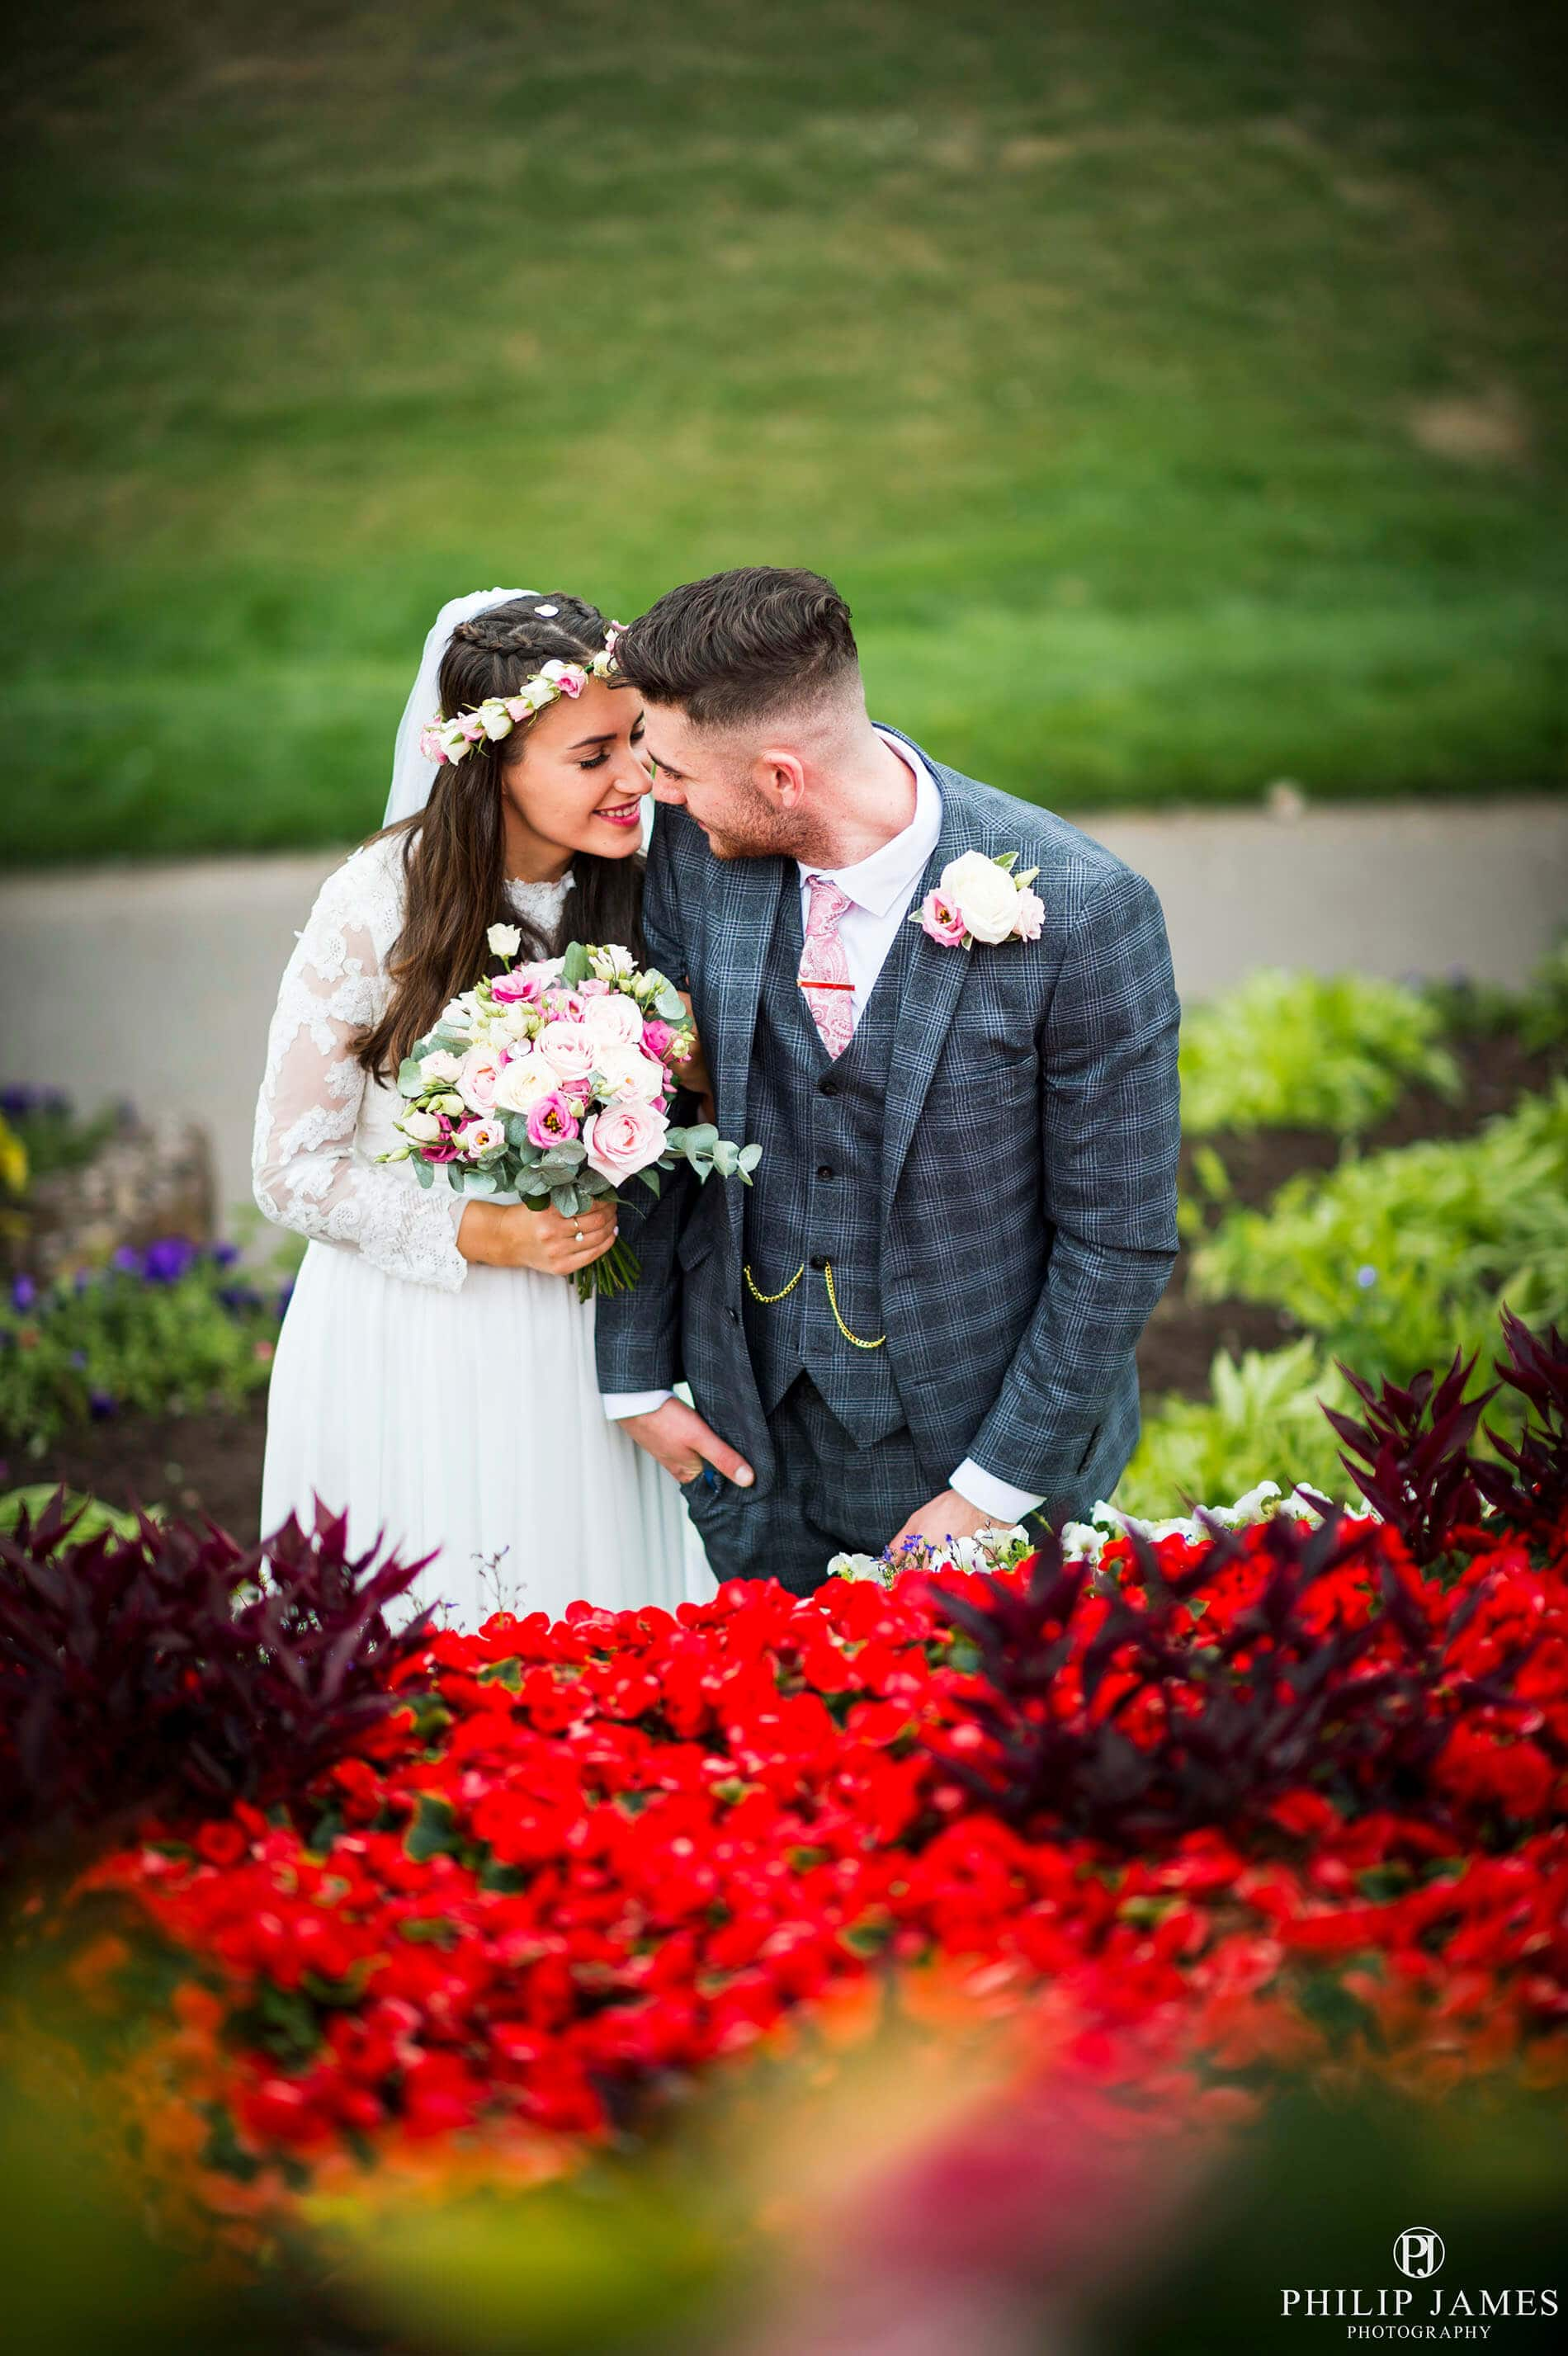 Tamworth Wedding Photographer - Philip James covers Birmingham, The West Midlands, Warwickshire, Solihull and all over the UK. Wedding photography Birmingham is my passion